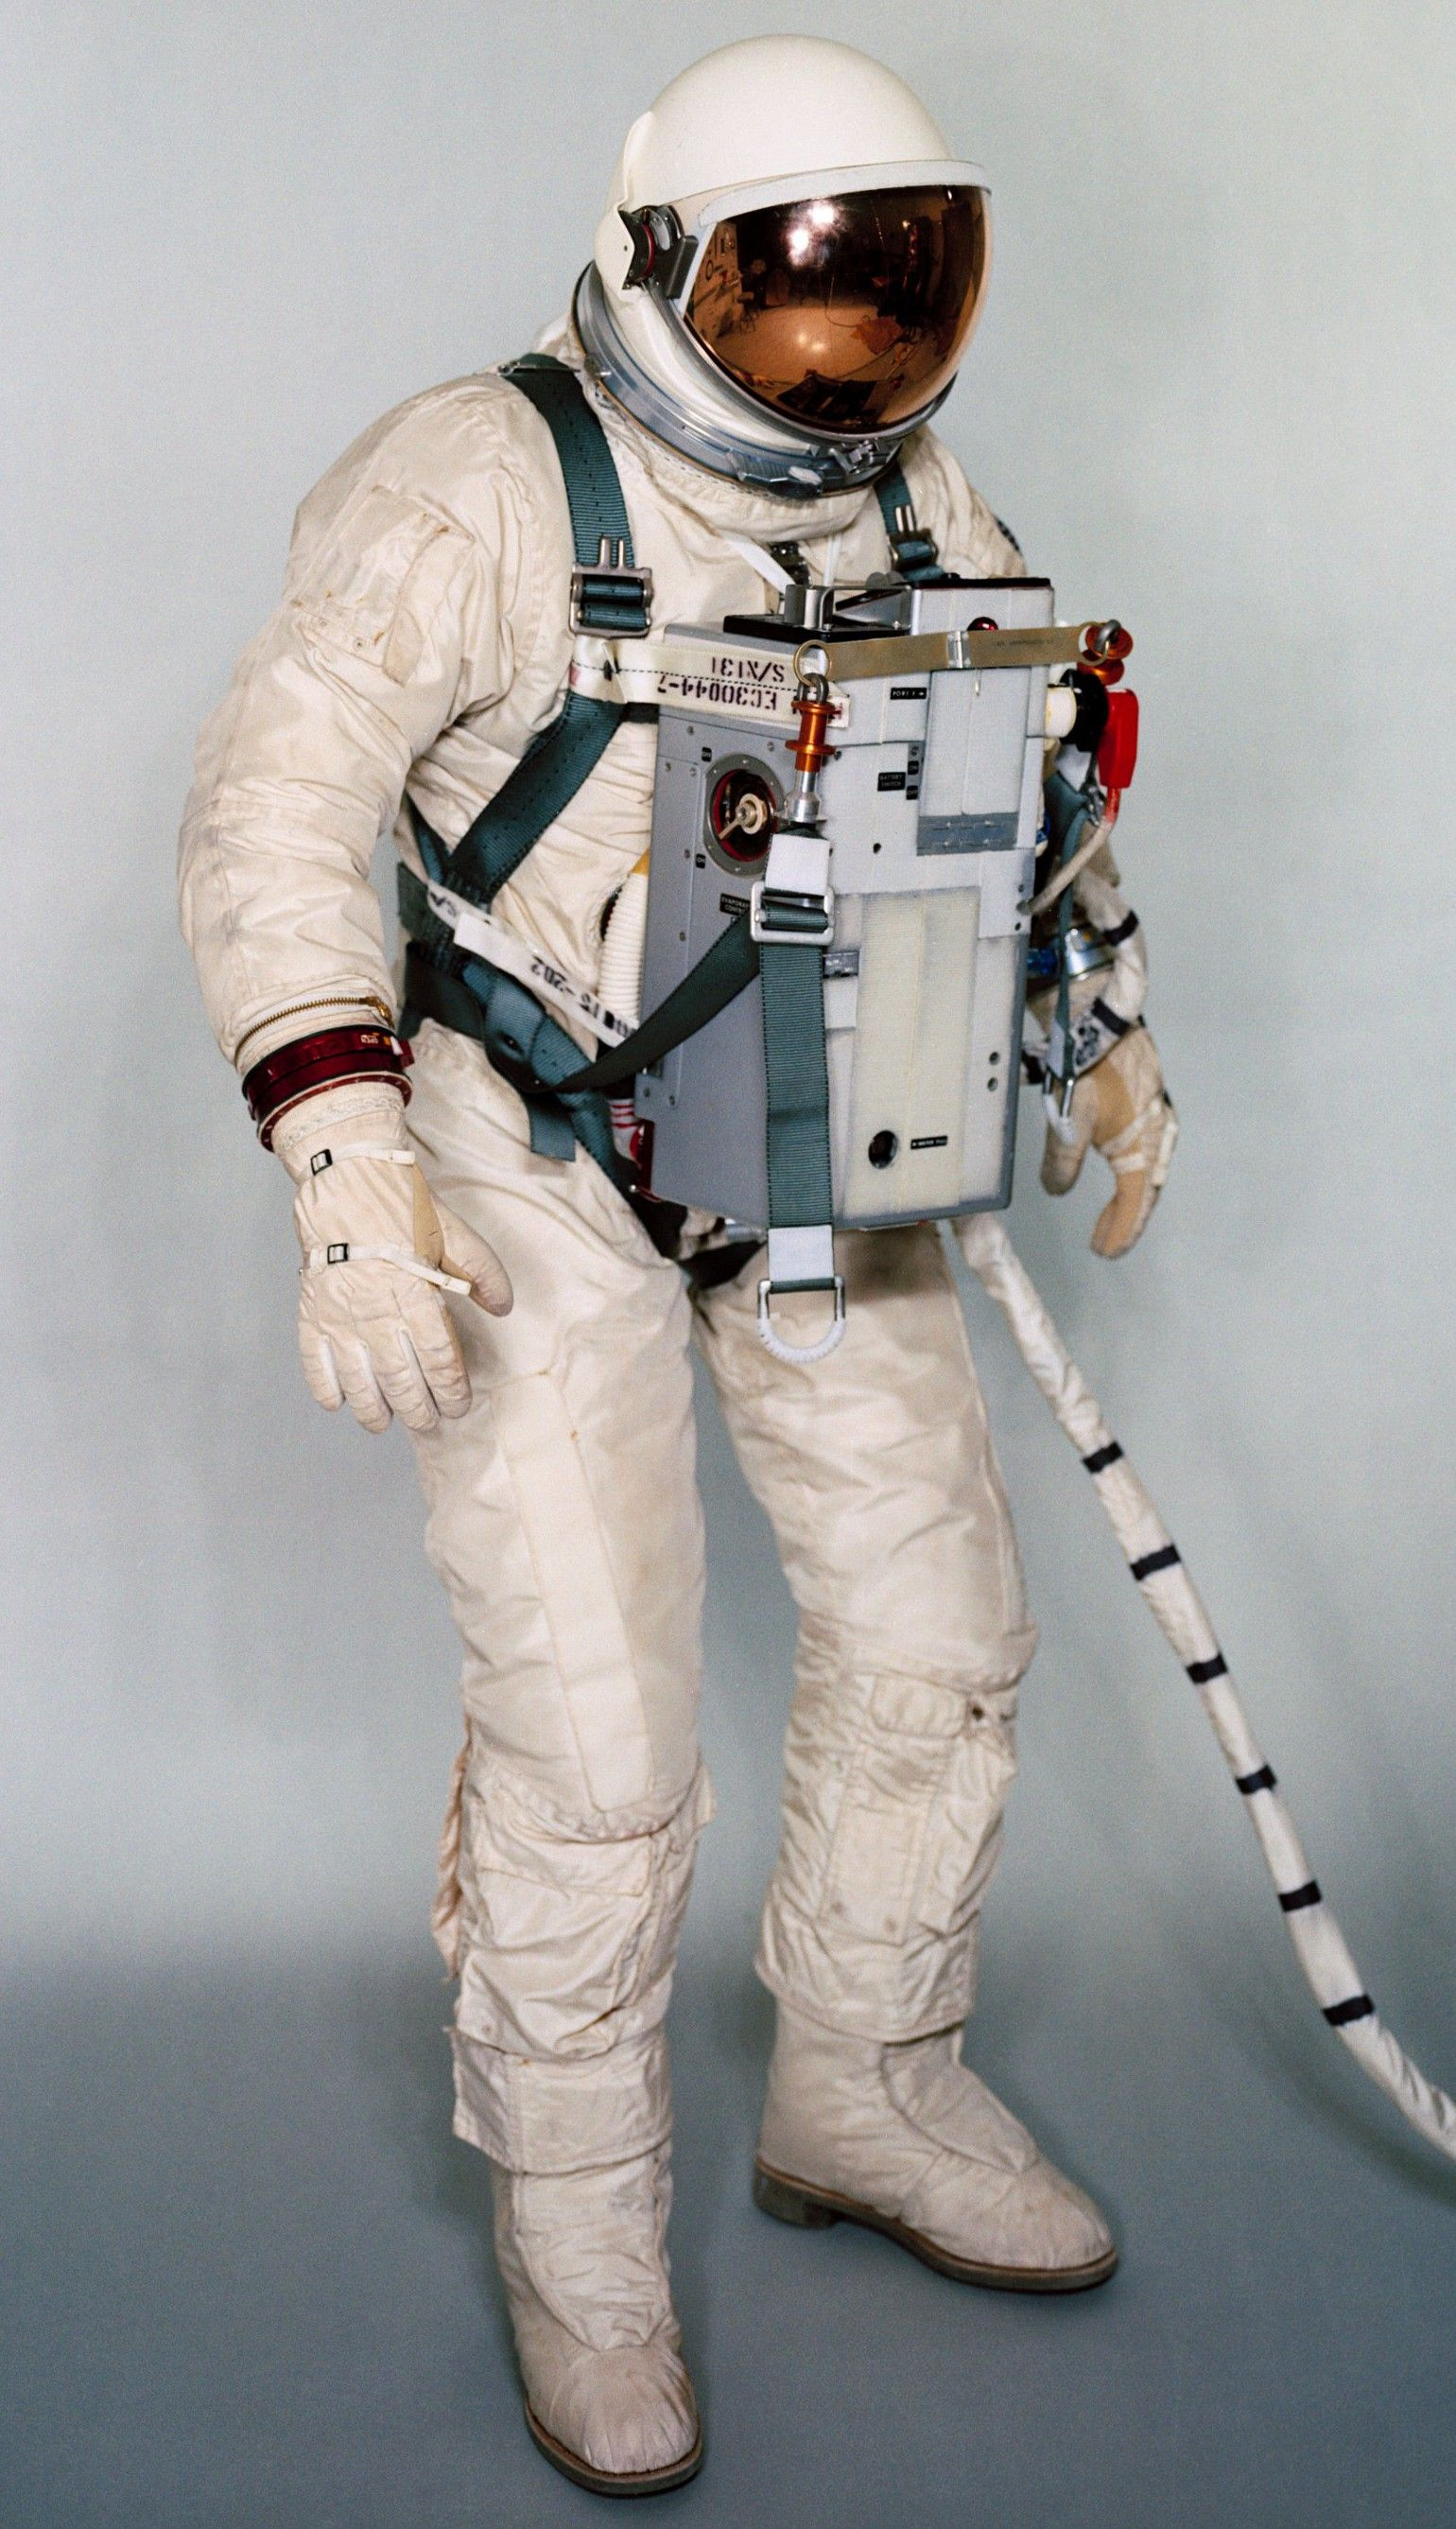 small resolution of life support system astronaut suit project gemini space girl sci fi characters